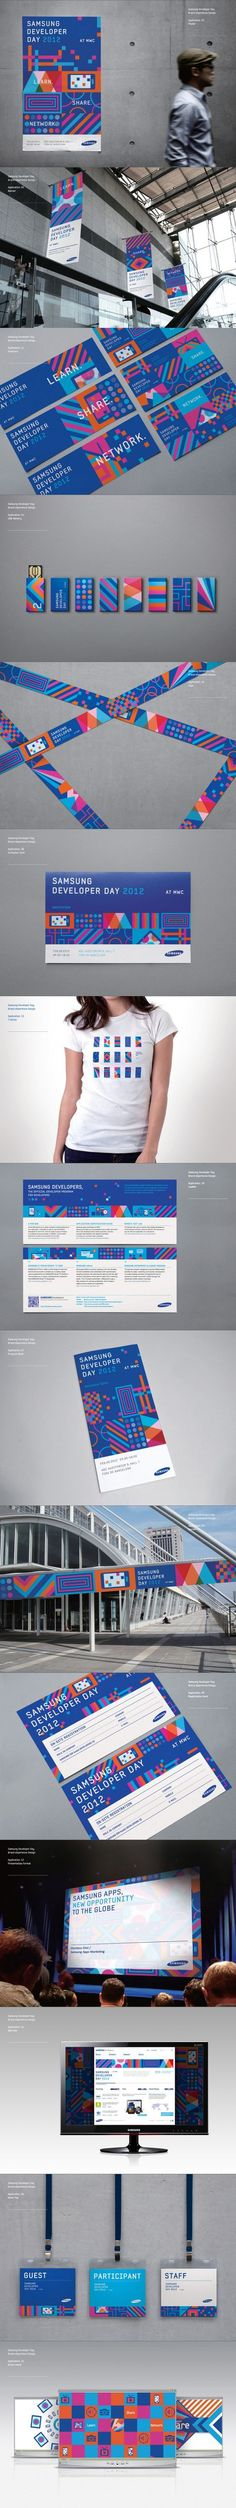 Samsung Developers Branding on Behance | Fivestar Branding #graphic #design #brand #identity